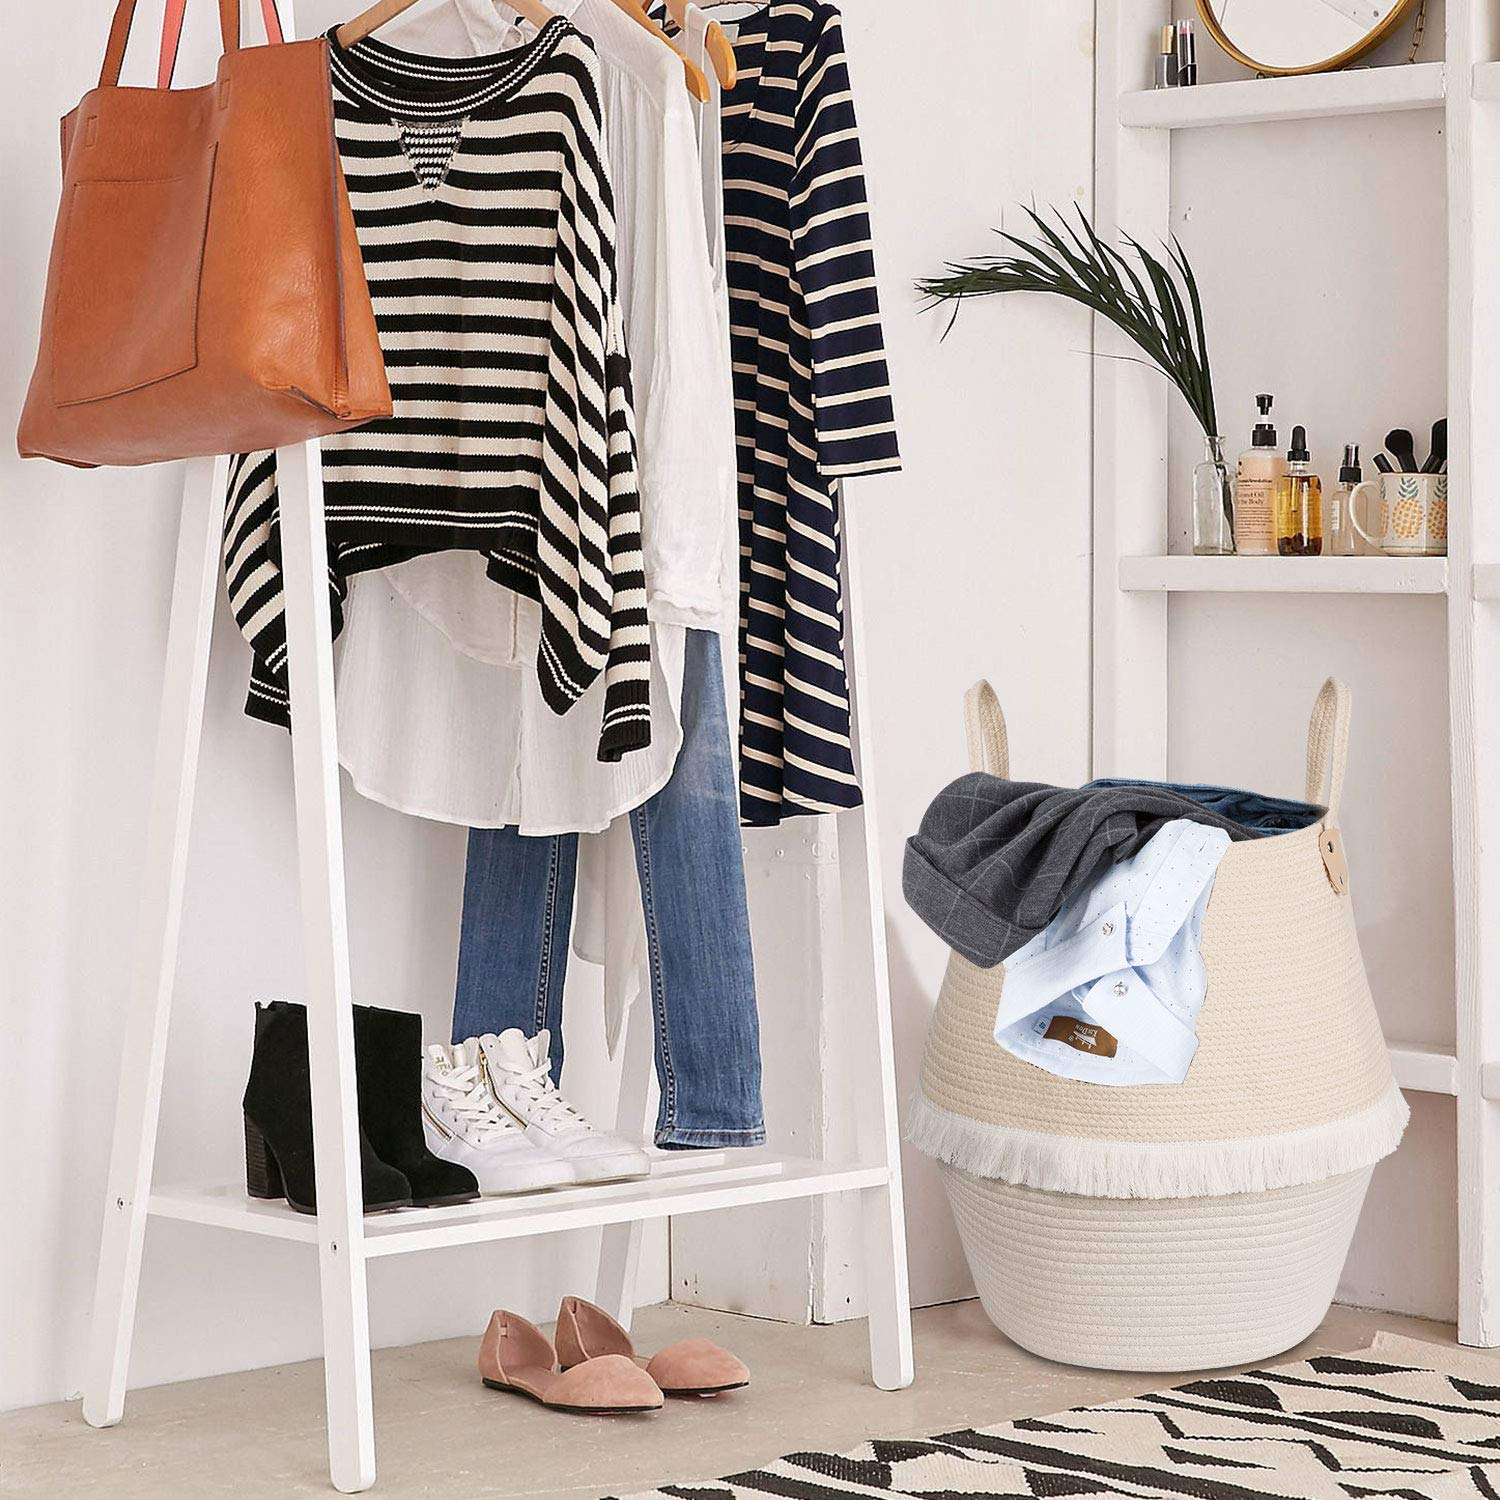 16.5 /× 15 /× 12 Tassels Home Decor Large Woven Storage Basket with Handles for Kids Laundry Blanket Toys Baby Nursery Containers Plant Basket Goodpick Cotton Rope Basket